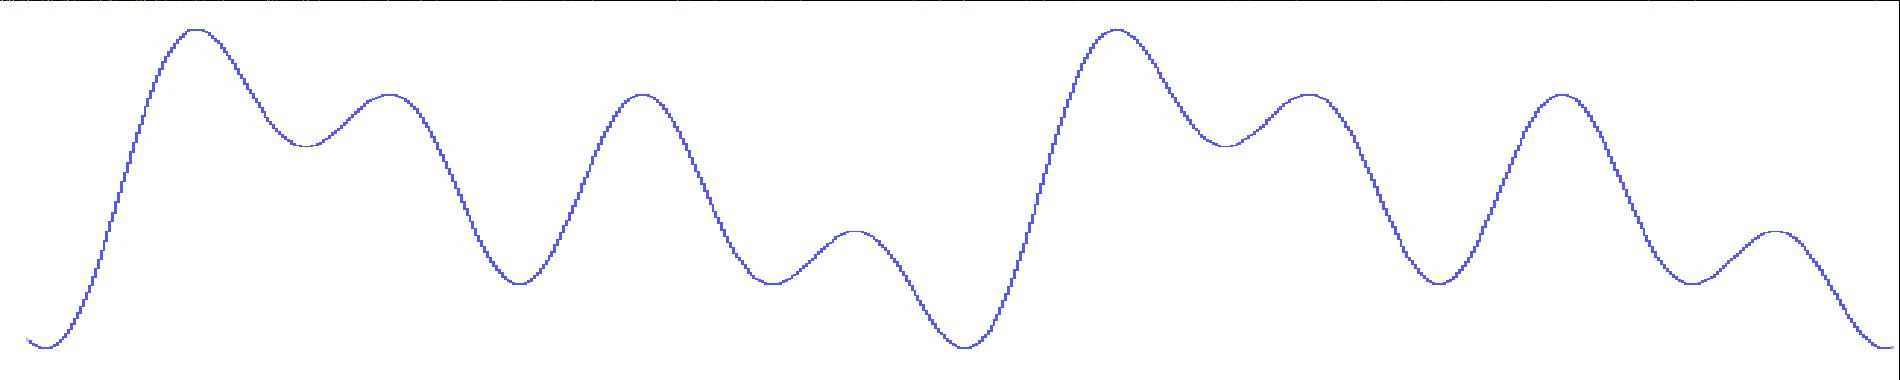 Data Acquisition Waveform - Original